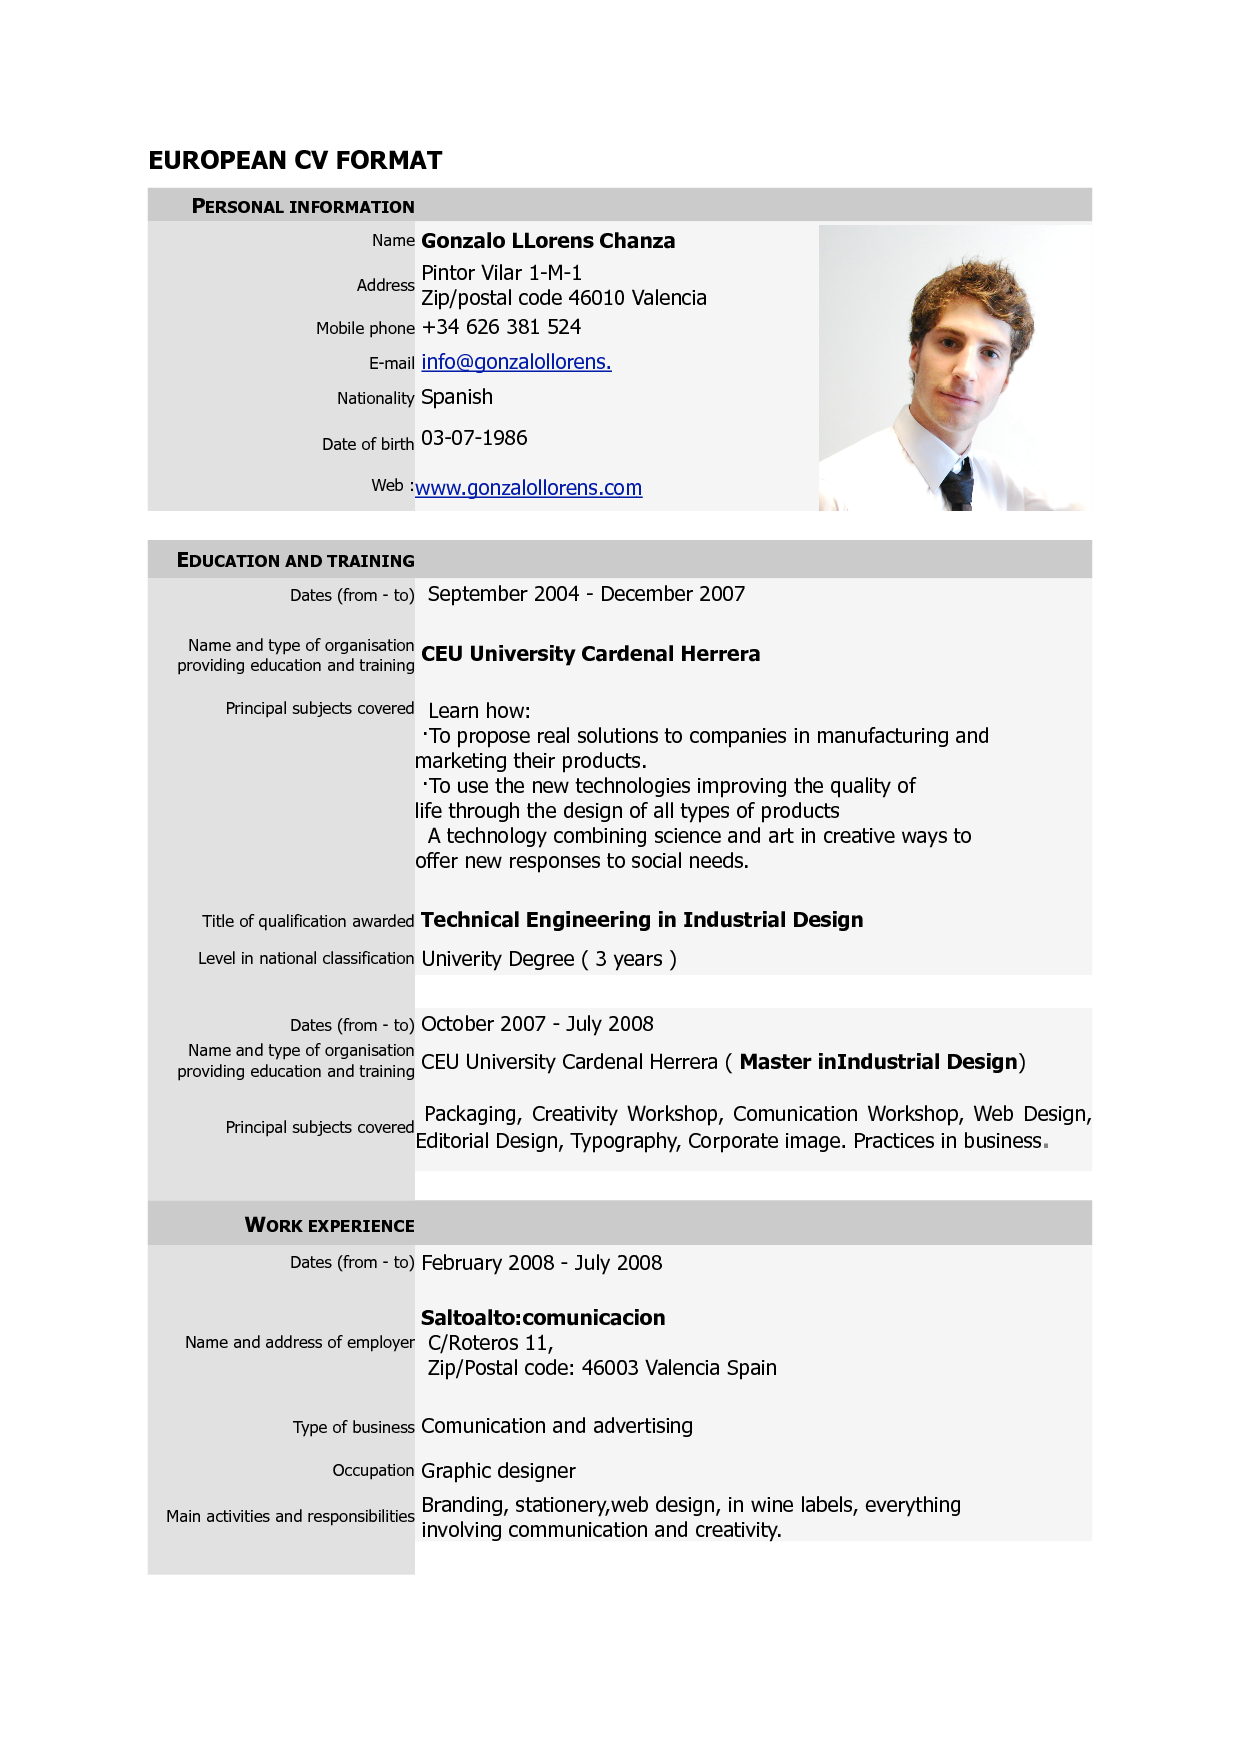 Sample Resume Formats Free Download Cv Europass Pdf Europass Home European Cv Format Pdf